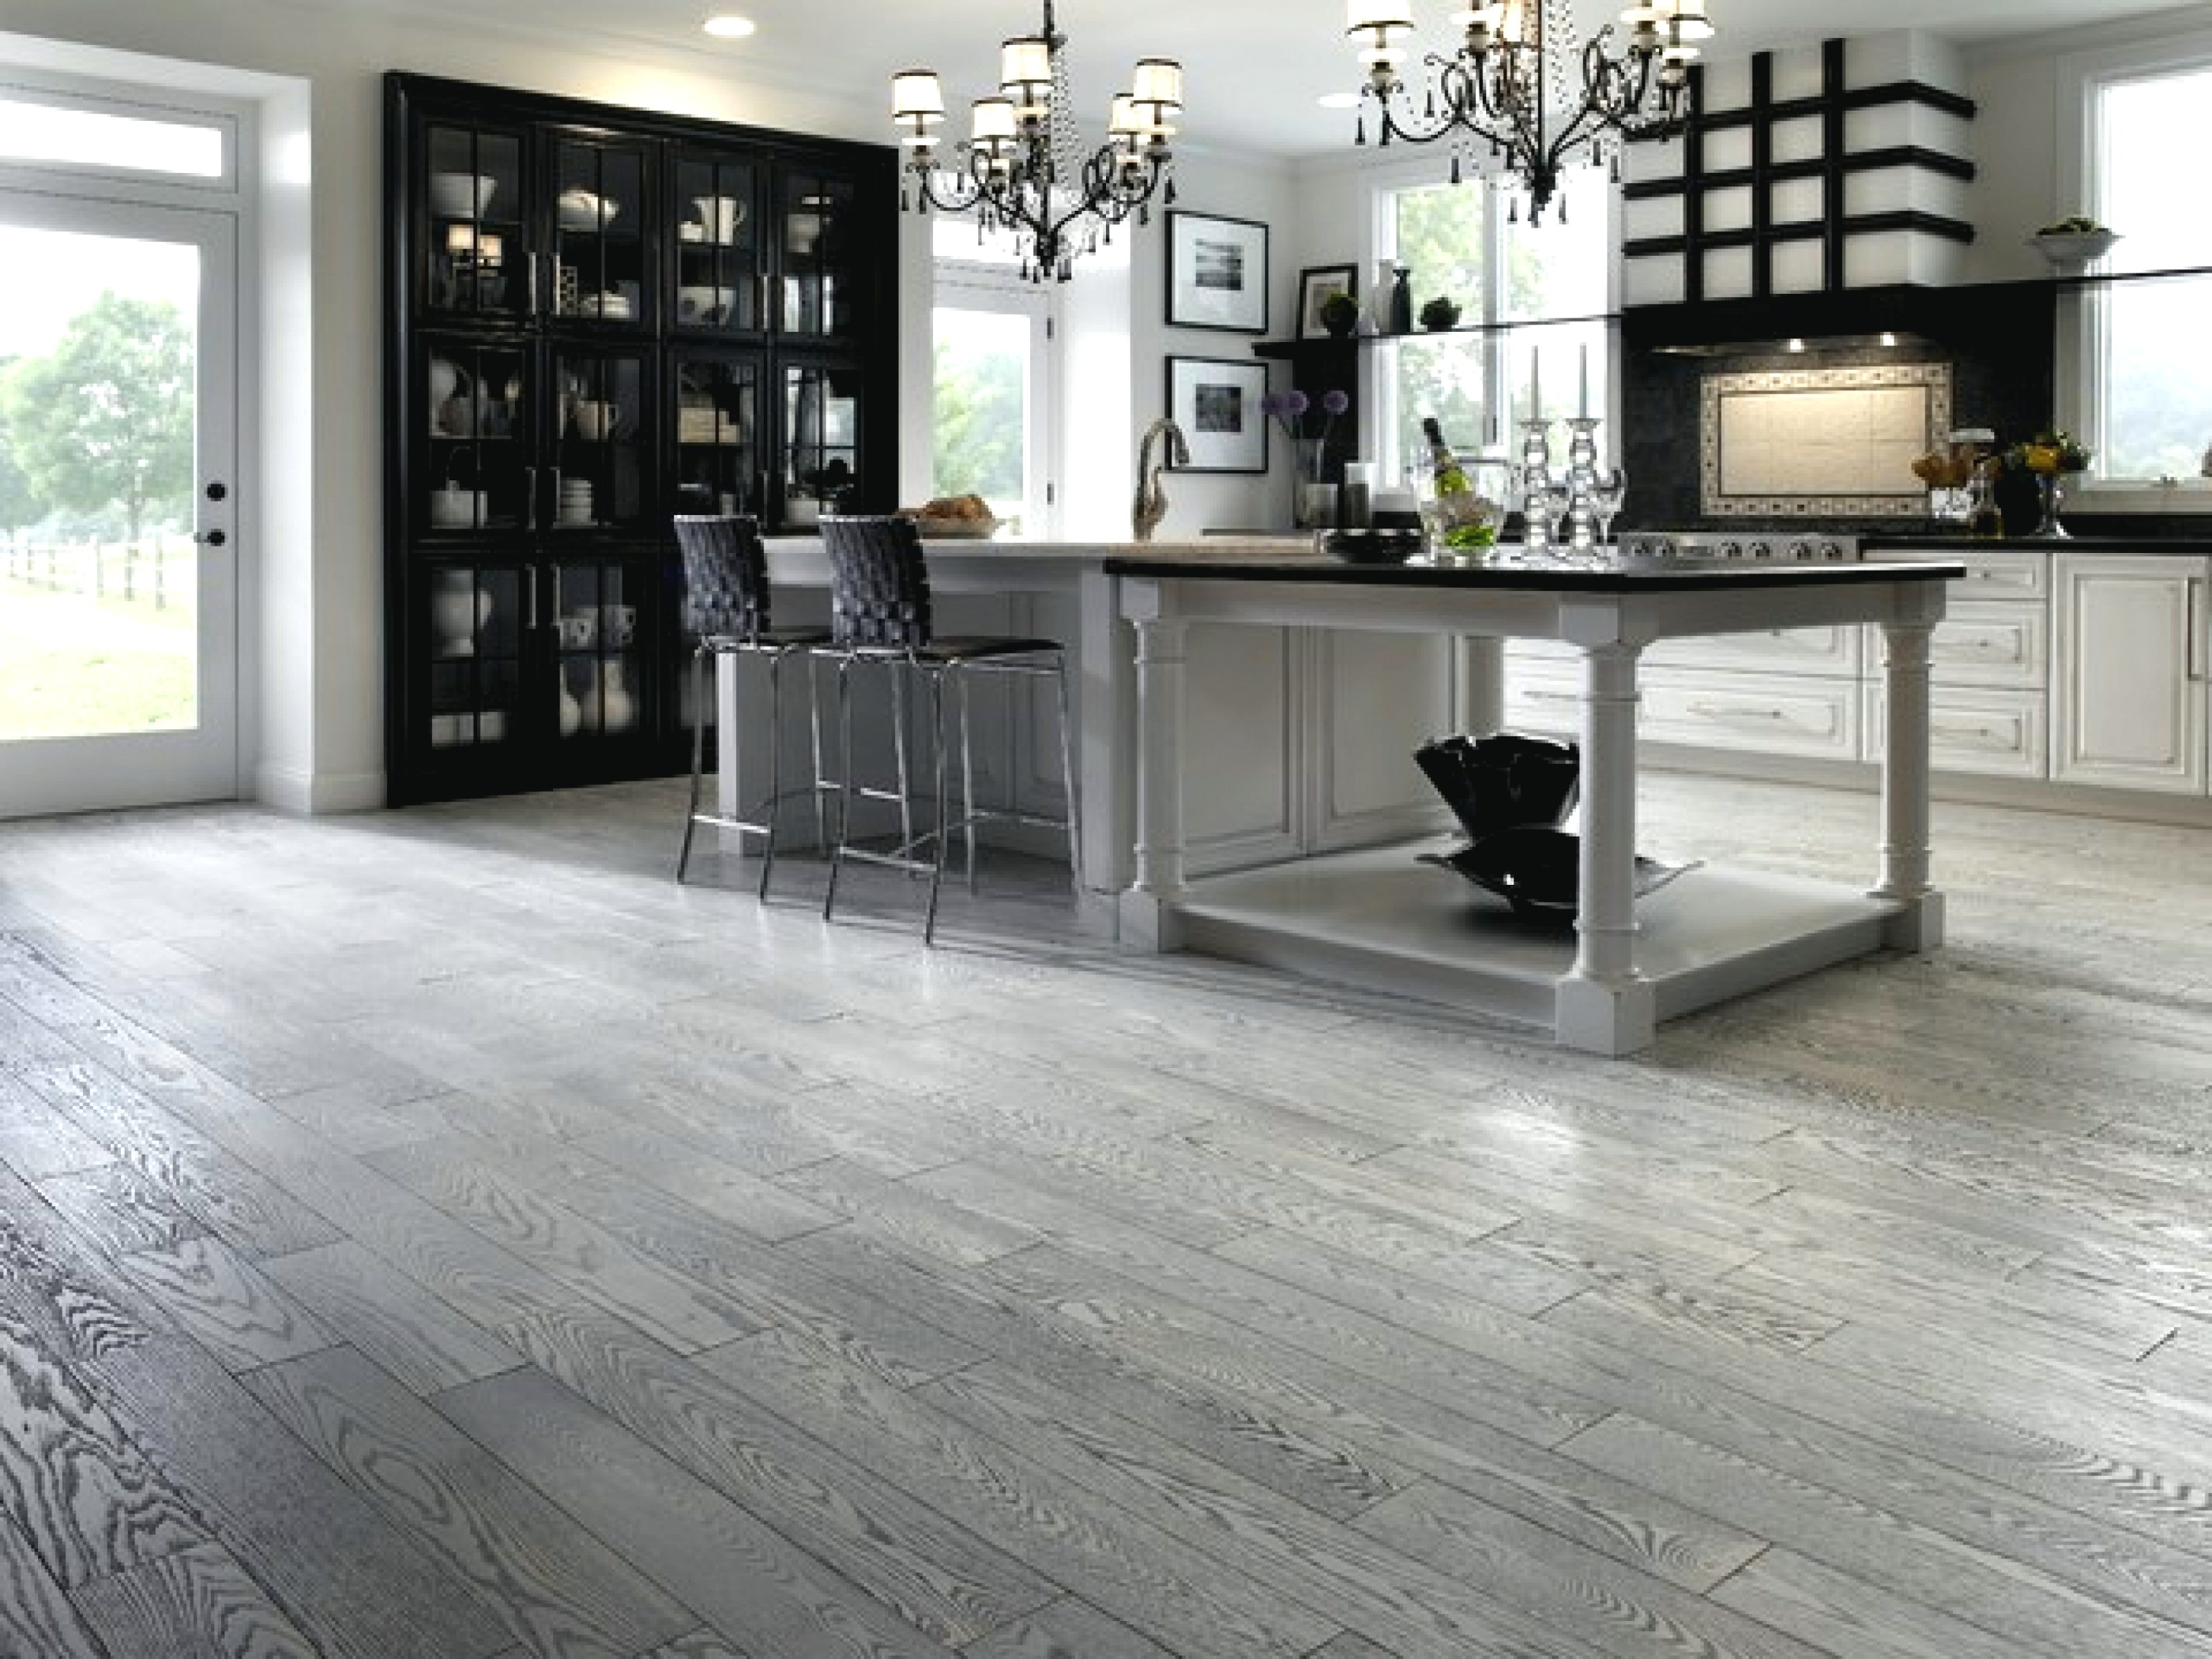 5 'Shades' of Gray for Fantastic Flooring Options